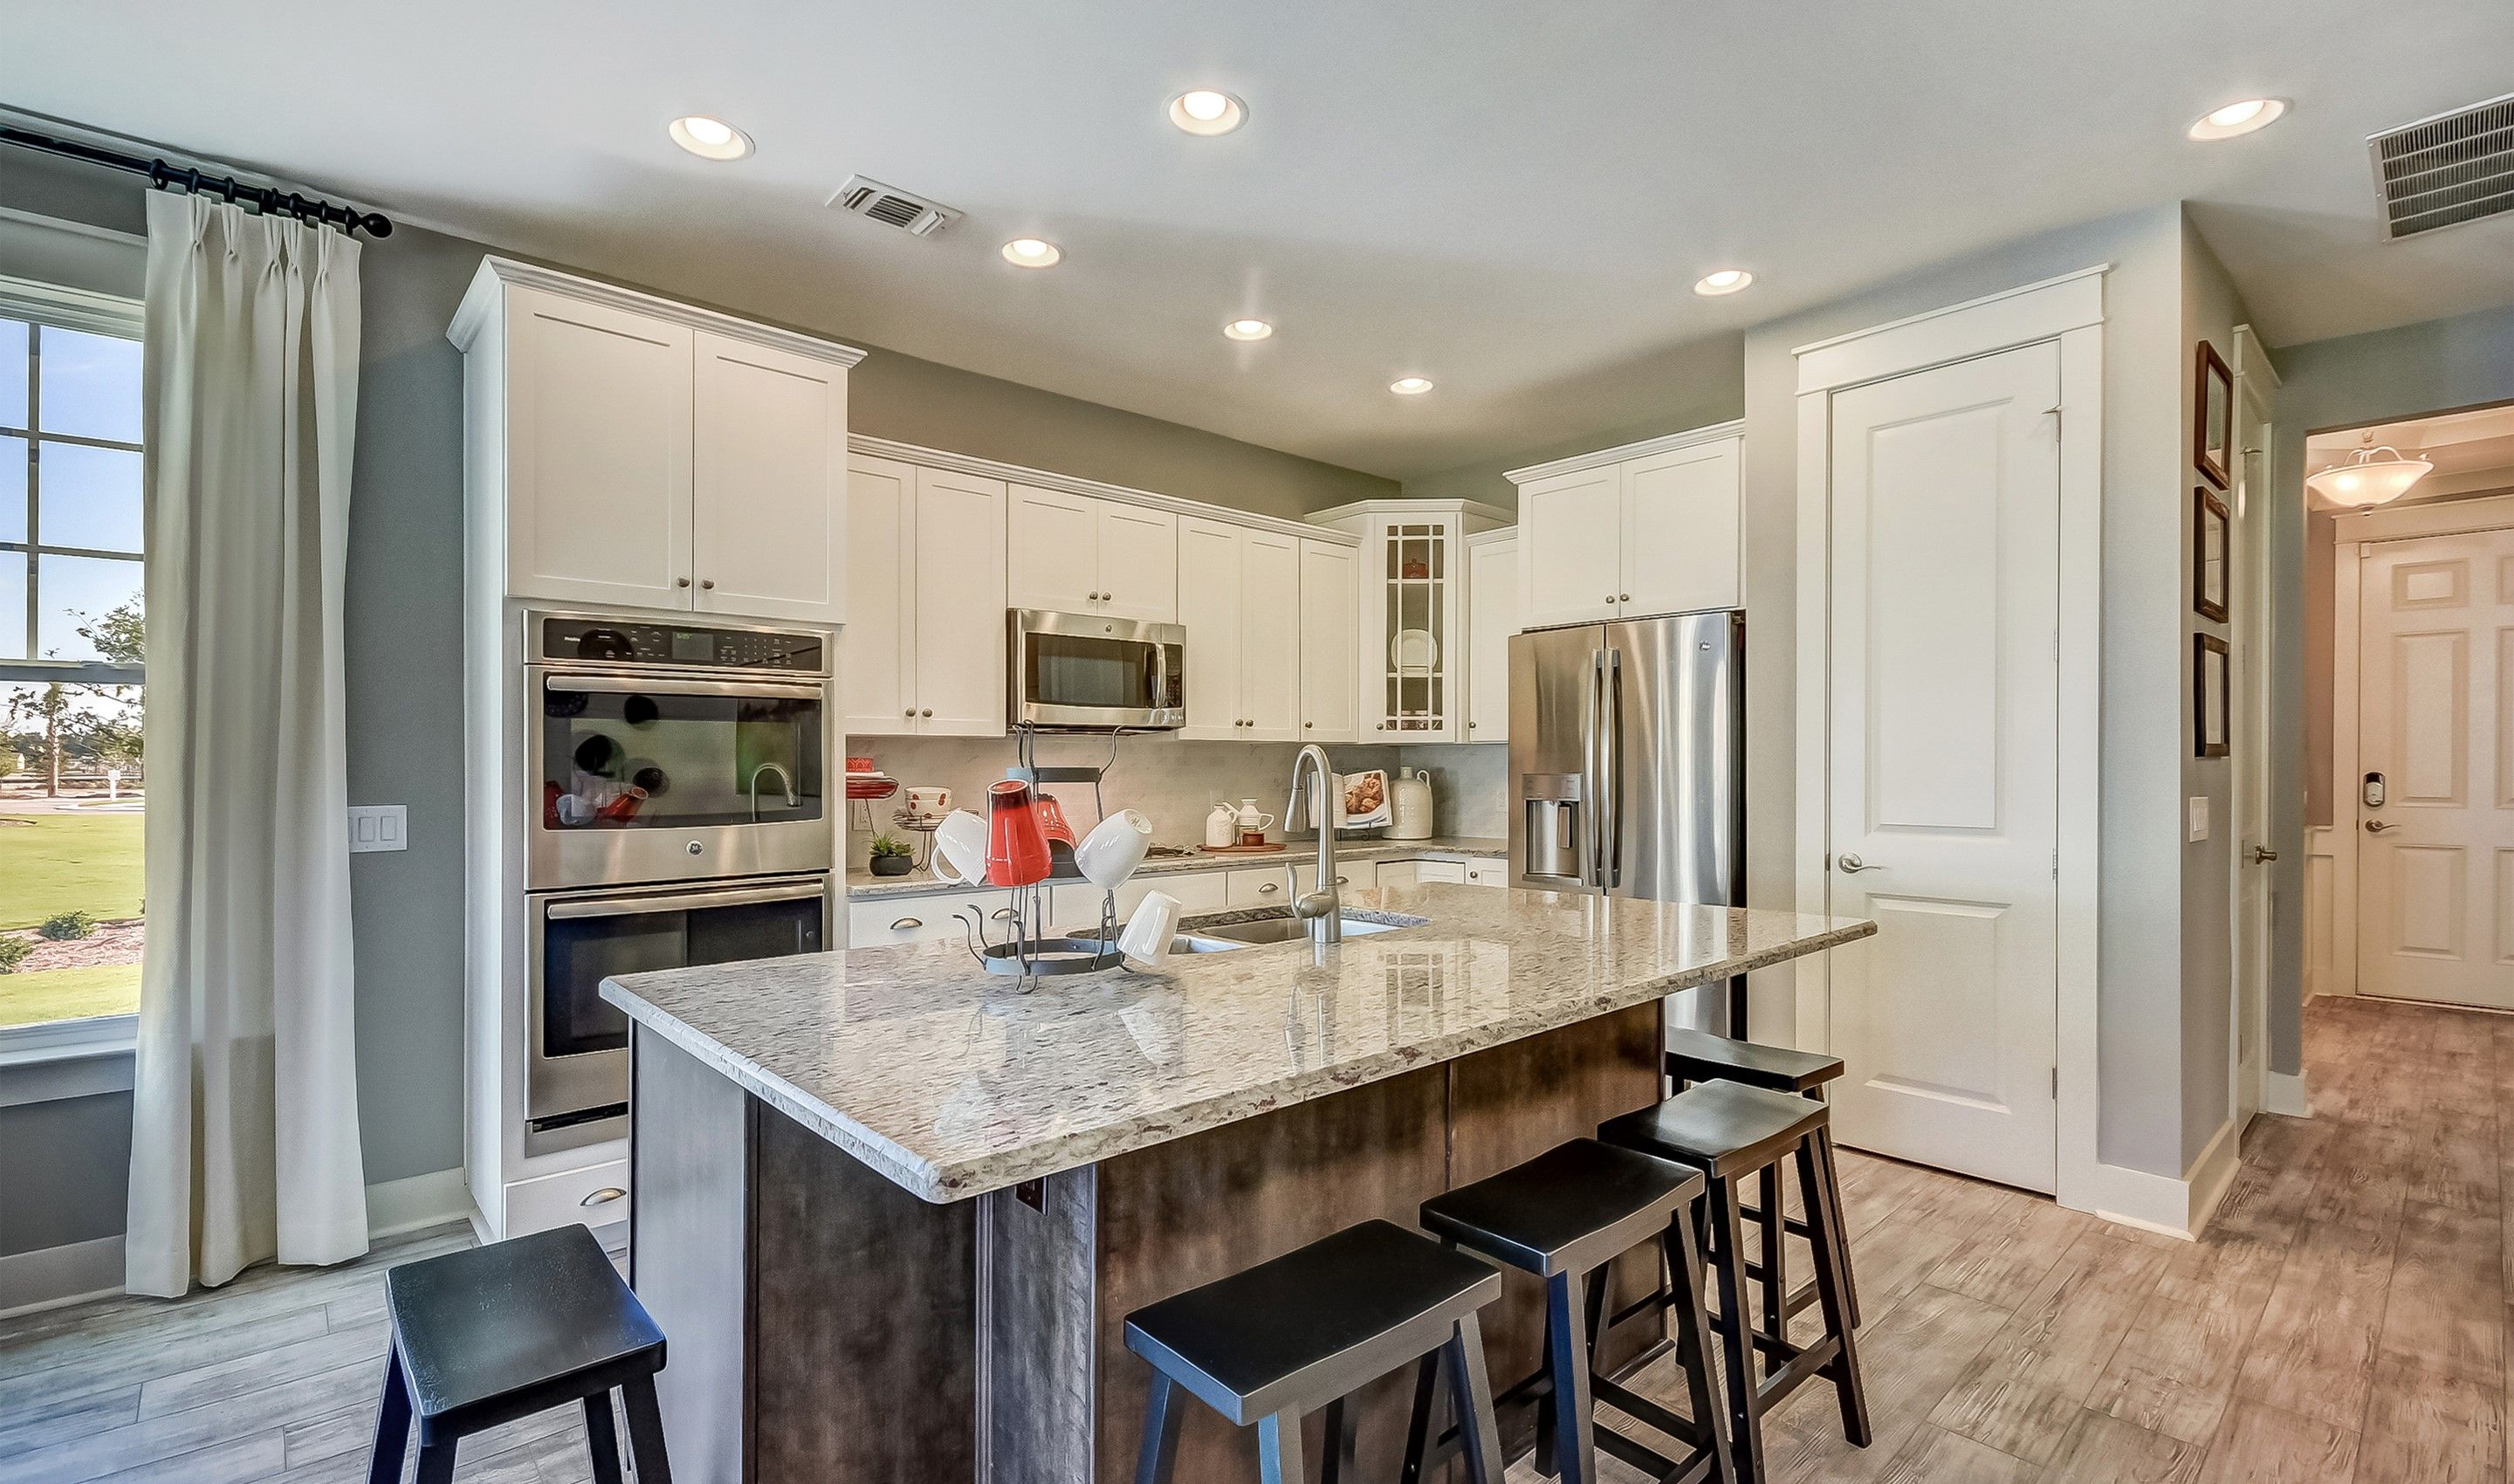 Kitchen featured in the Athens By K. Hovnanian's® Four Seasons in Hilton Head, SC